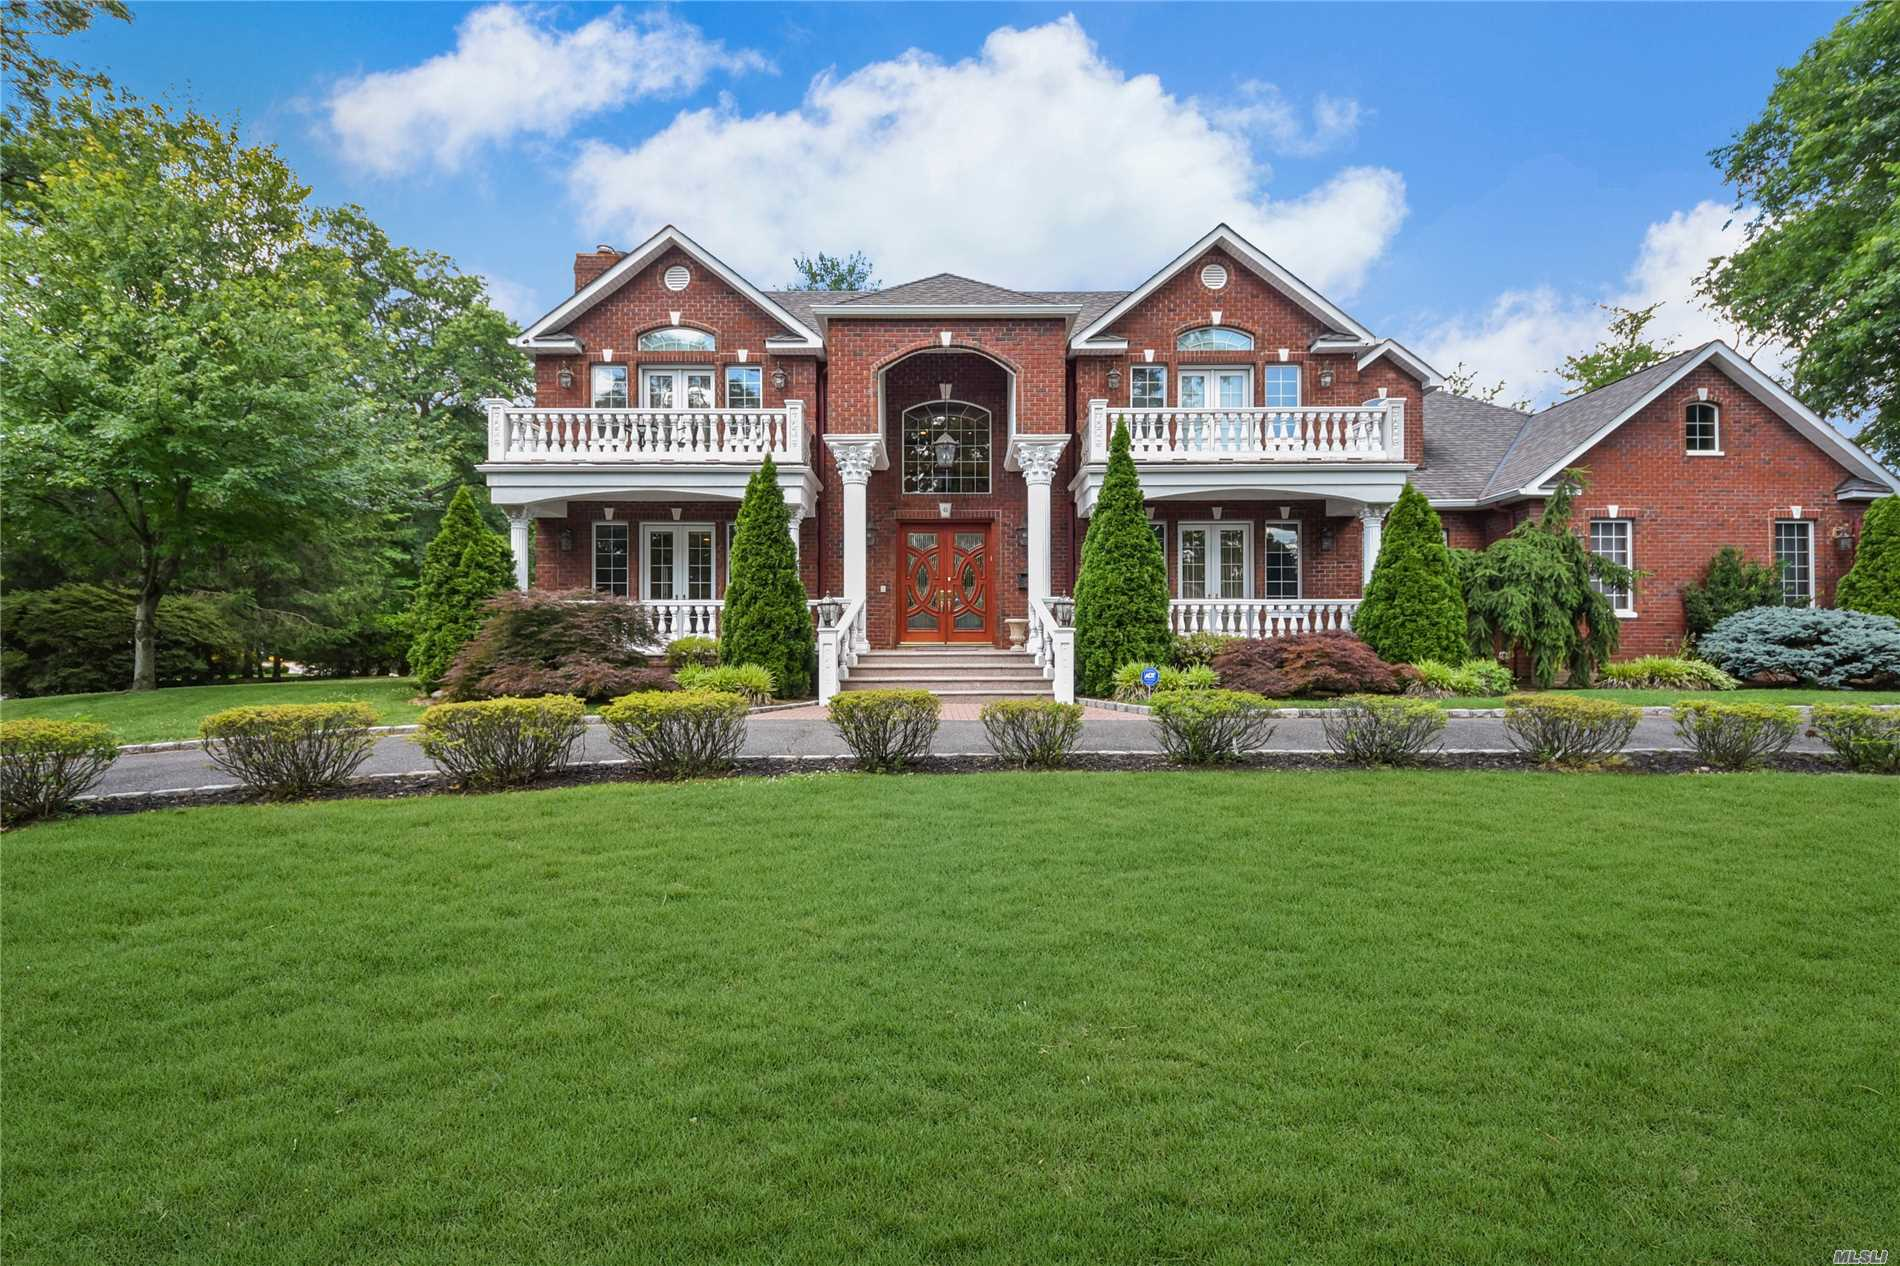 Roslyn Heights Country Club, Builder's Own Home! Elegant & Spacious Custom Brick Colonial W/ High Ceilings, Featuring Semi Circular Driveway, Welcoming Porch & Romantic Balconies, 10 Ft Ceilings, Elegant Millwork & Paneling Throughout, 6 Generous Size Br, Radiant Heat, Mahogany In-Lay Floors, Surround Sound, Custom Fitted Closets, Chef's Kitchen W/ Custom Crafted Cabinetry & Cappuccino Machine.Mstr Ste W/Fpl, Sit Rm/ 7th Br, Steam Shower, Make Up Vanity/Sitting Area Massive Lower Level W/Ose.